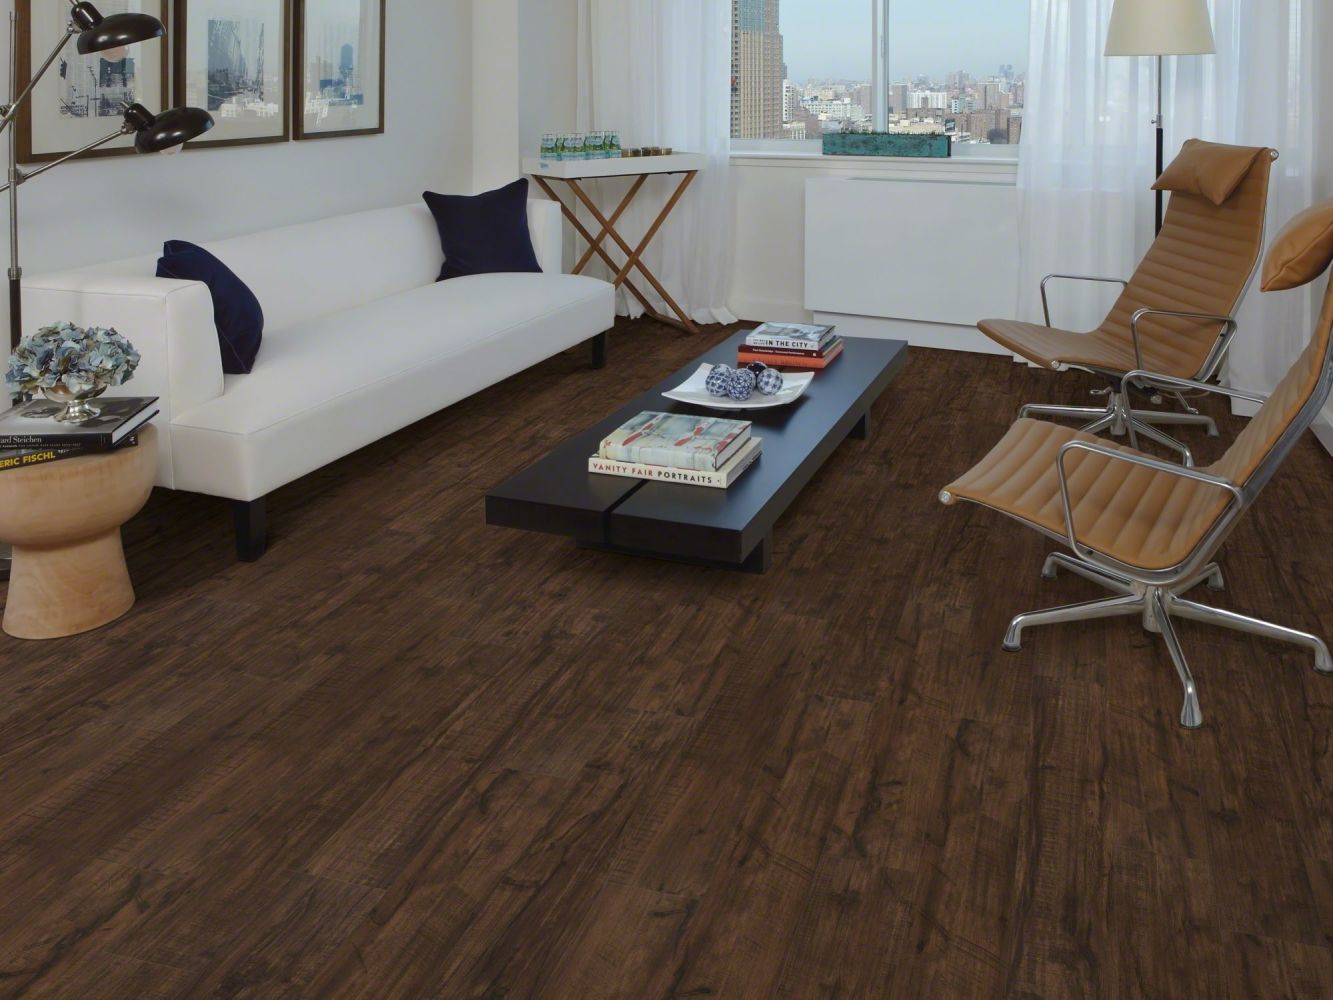 Shaw Floors Vinyl Residential Endura 512c Plus Umber Oak 00734_0736V